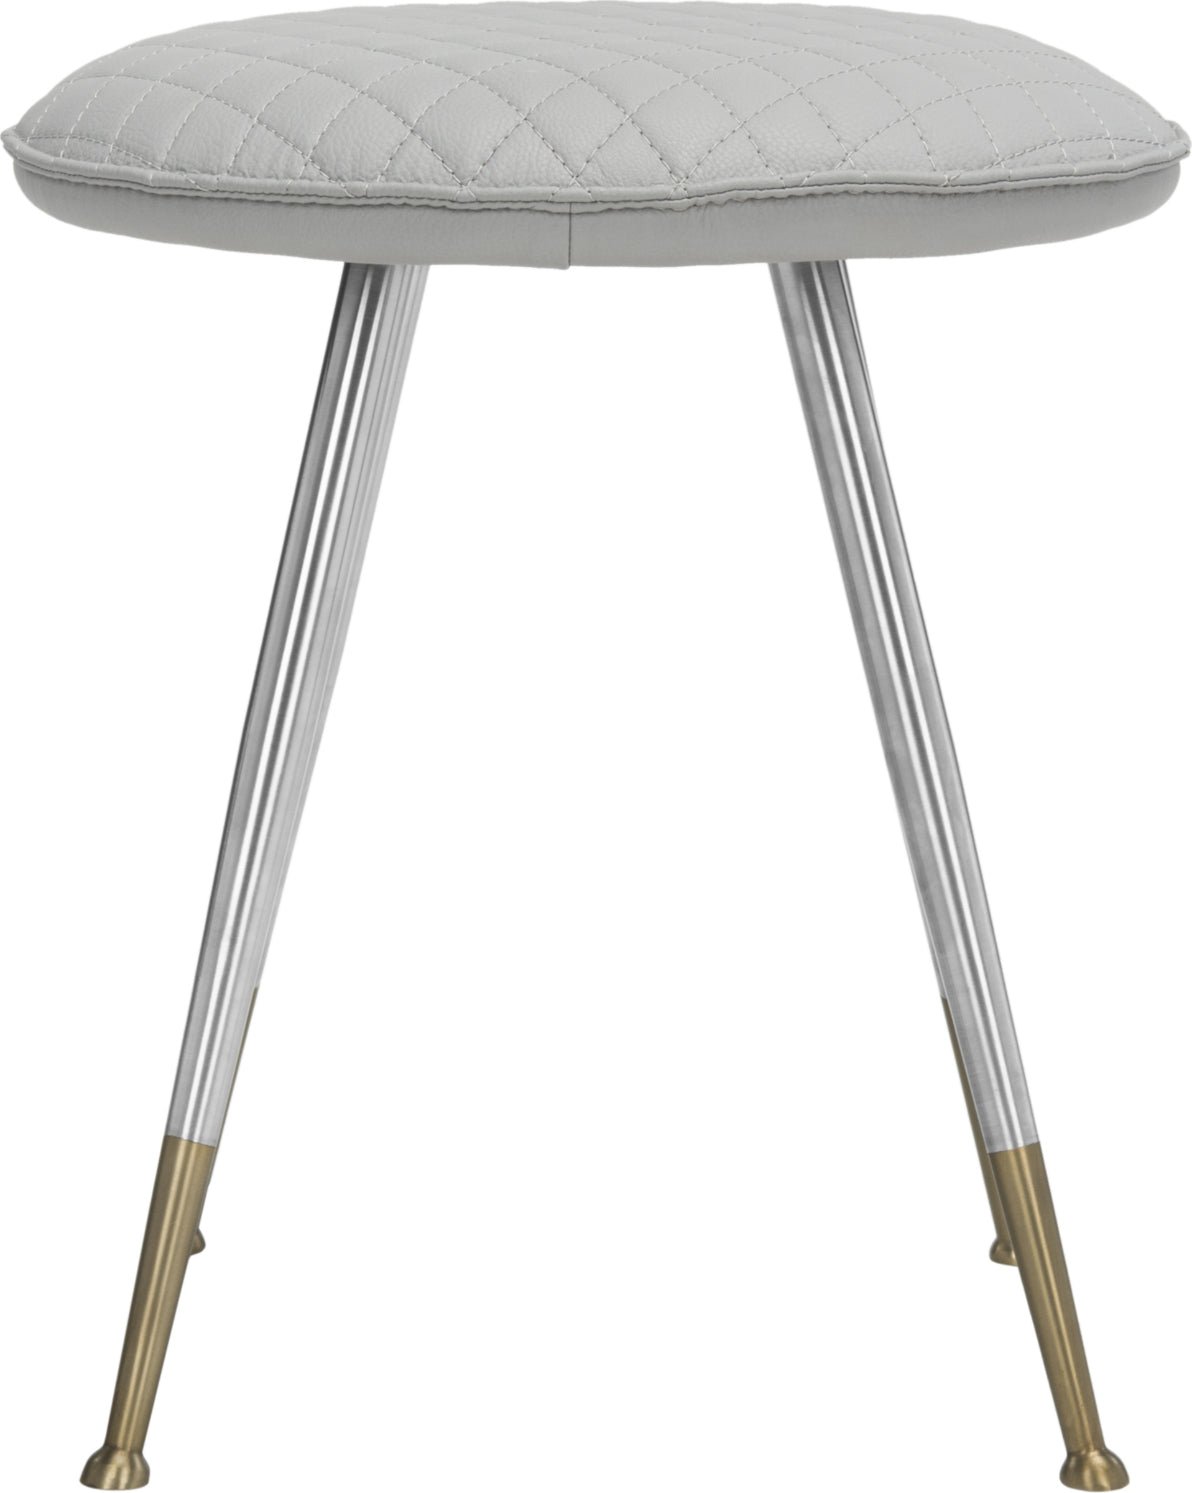 Safavieh Brinley 30''H Mid Century Modern Stool Light Grey and Silver Furniture main image